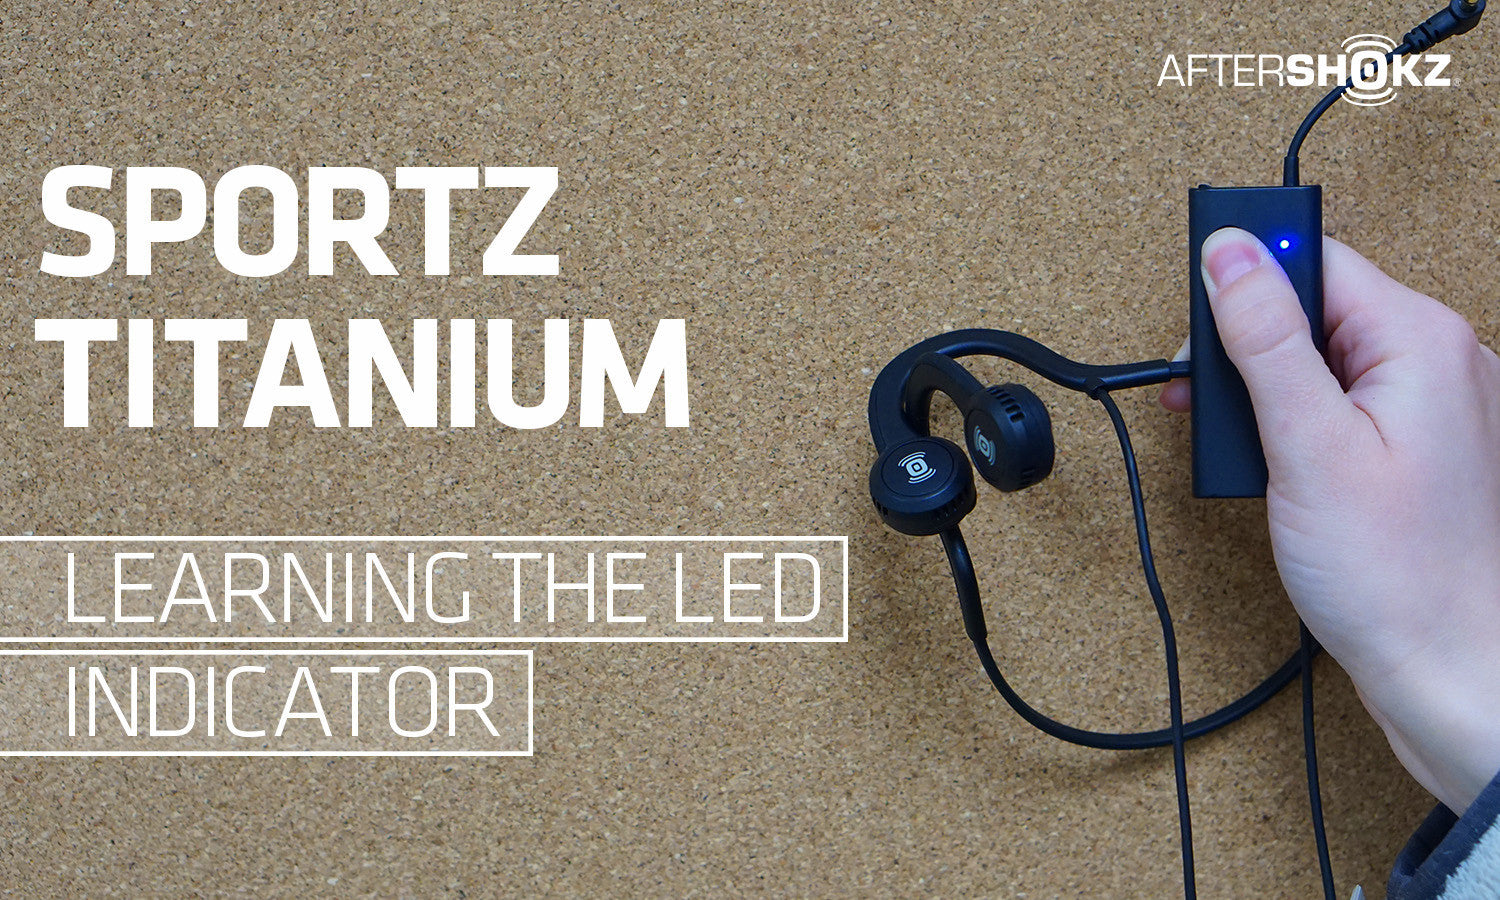 How To Read the LED Indicator On Your Sportz Titanium